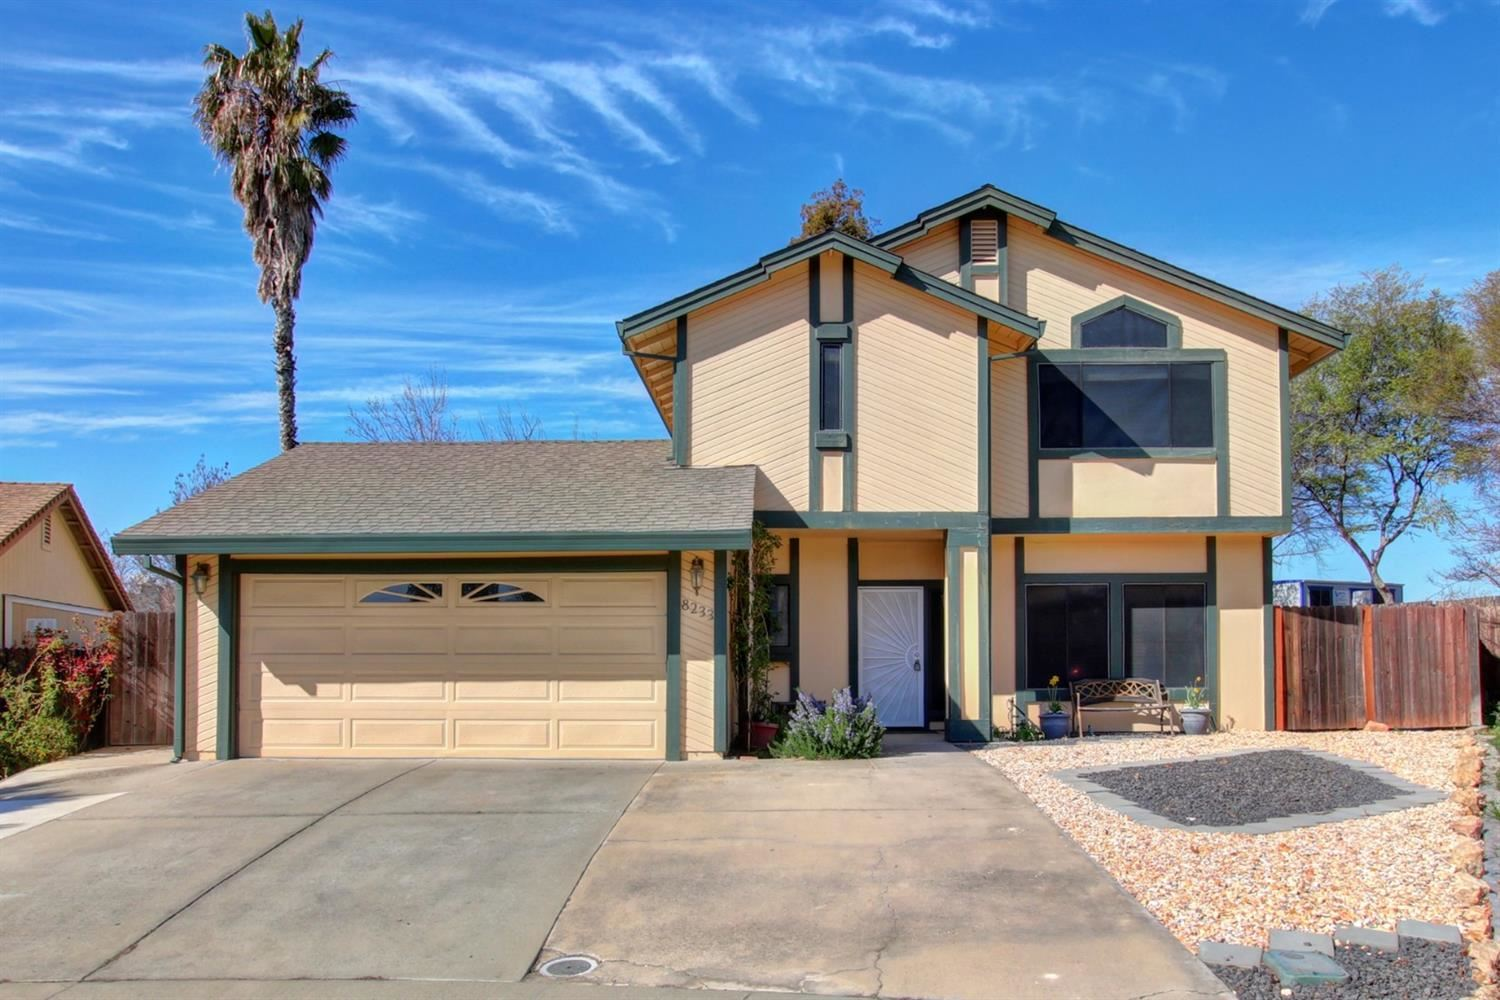 Photo of 8233 Sanderson Court, Antelope, CA 95843 (MLS # 221012247)